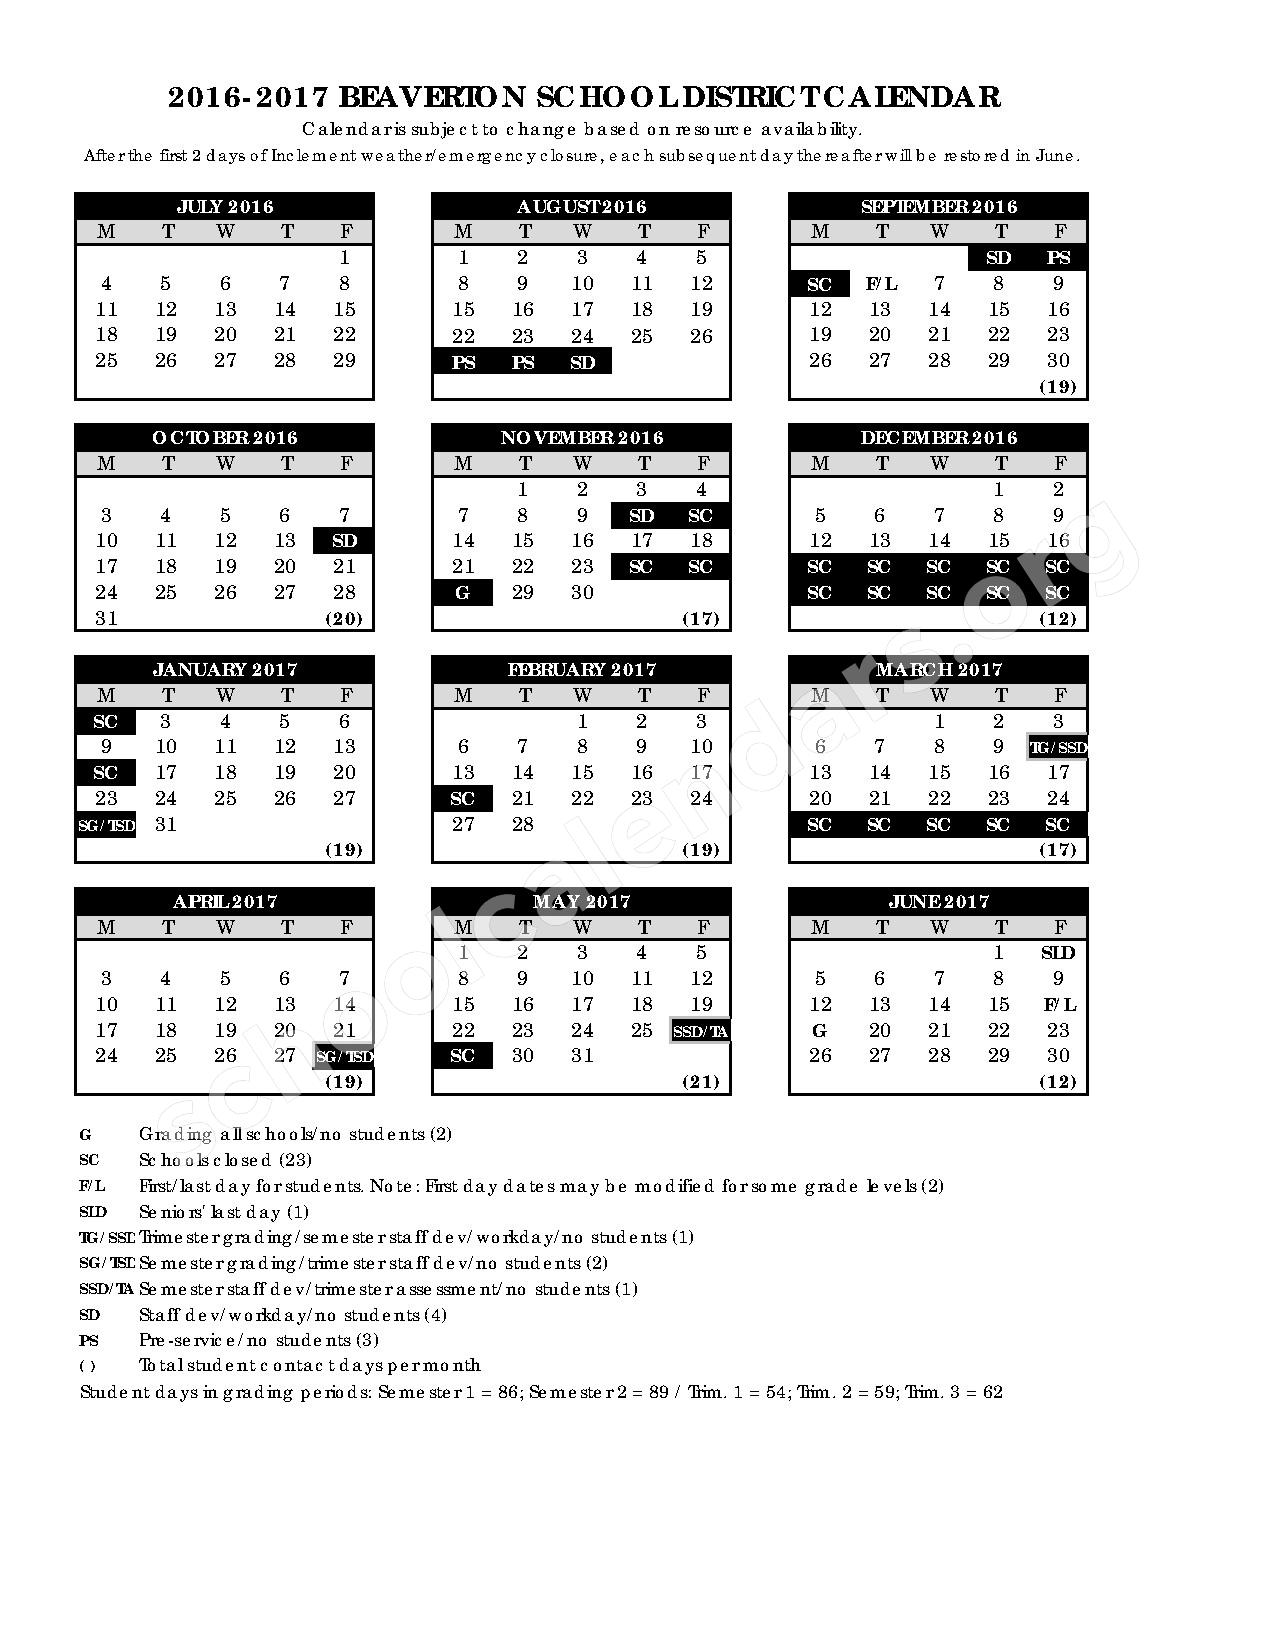 2016 - 2017 School Calendar – International School of Beaverton - High School – page 1